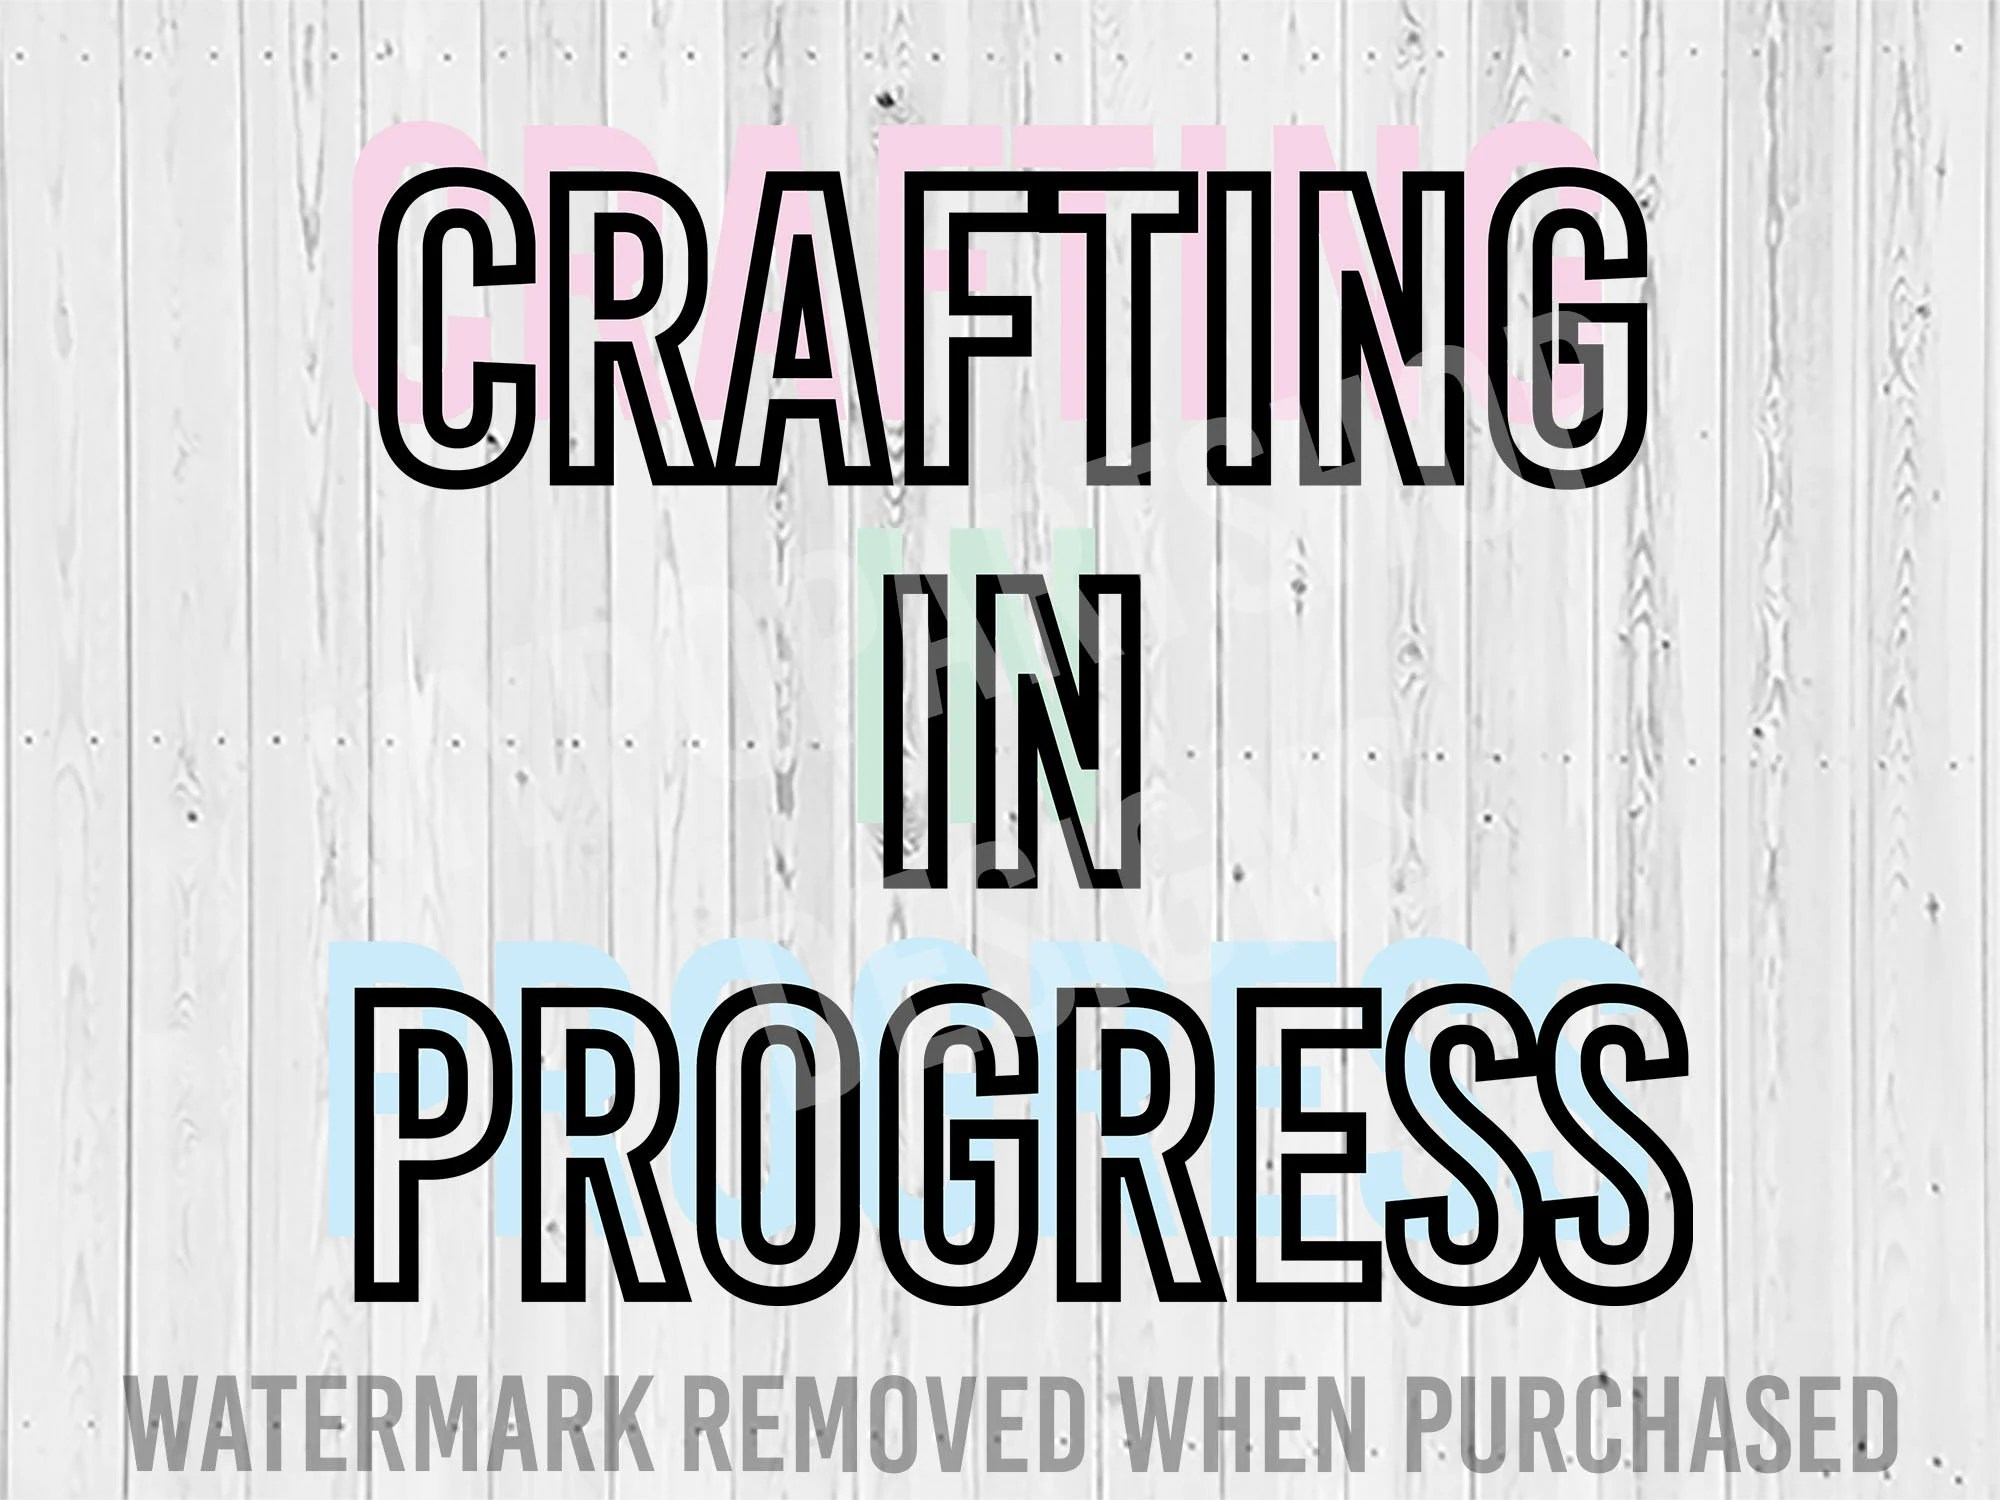 Crafting In Progress Svg Cut File Crafting Queen Svg Mom Etsy